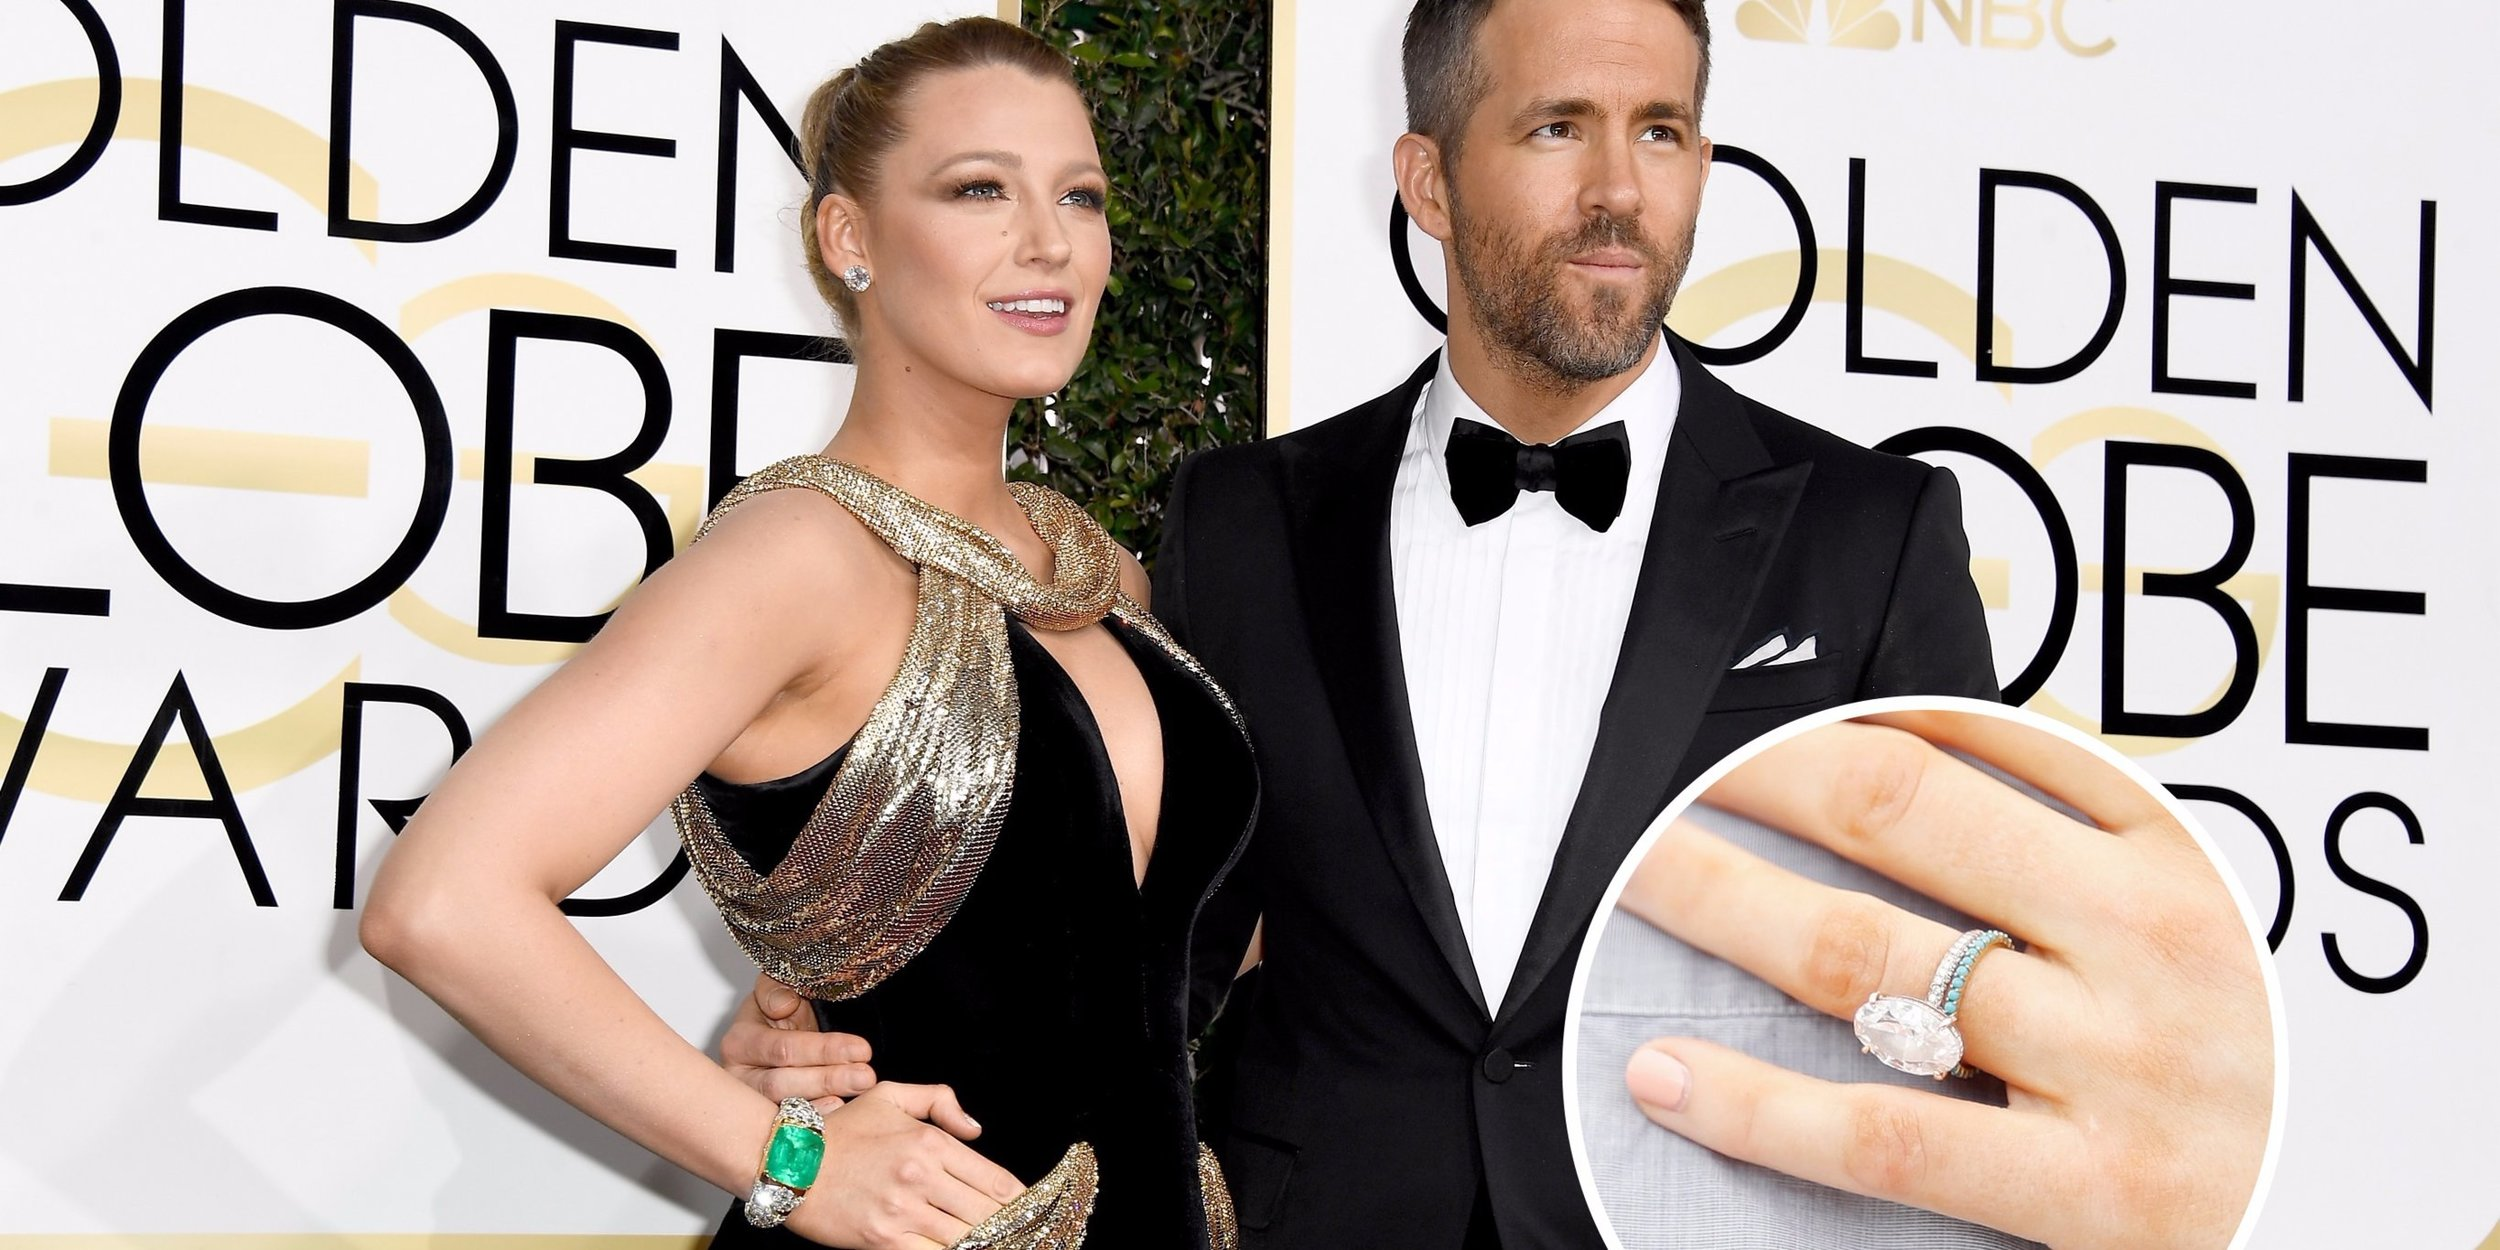 Blake Lively - Ryan Reynolds and Blake Lively also decided on an Oval Diamond for their engagement ring. Her diamond is set in a delicate three-row micro pave band with tiger claw prongs. This design has become a popular reference for many new couples beginning the process of creating a custom designed engagement ring.